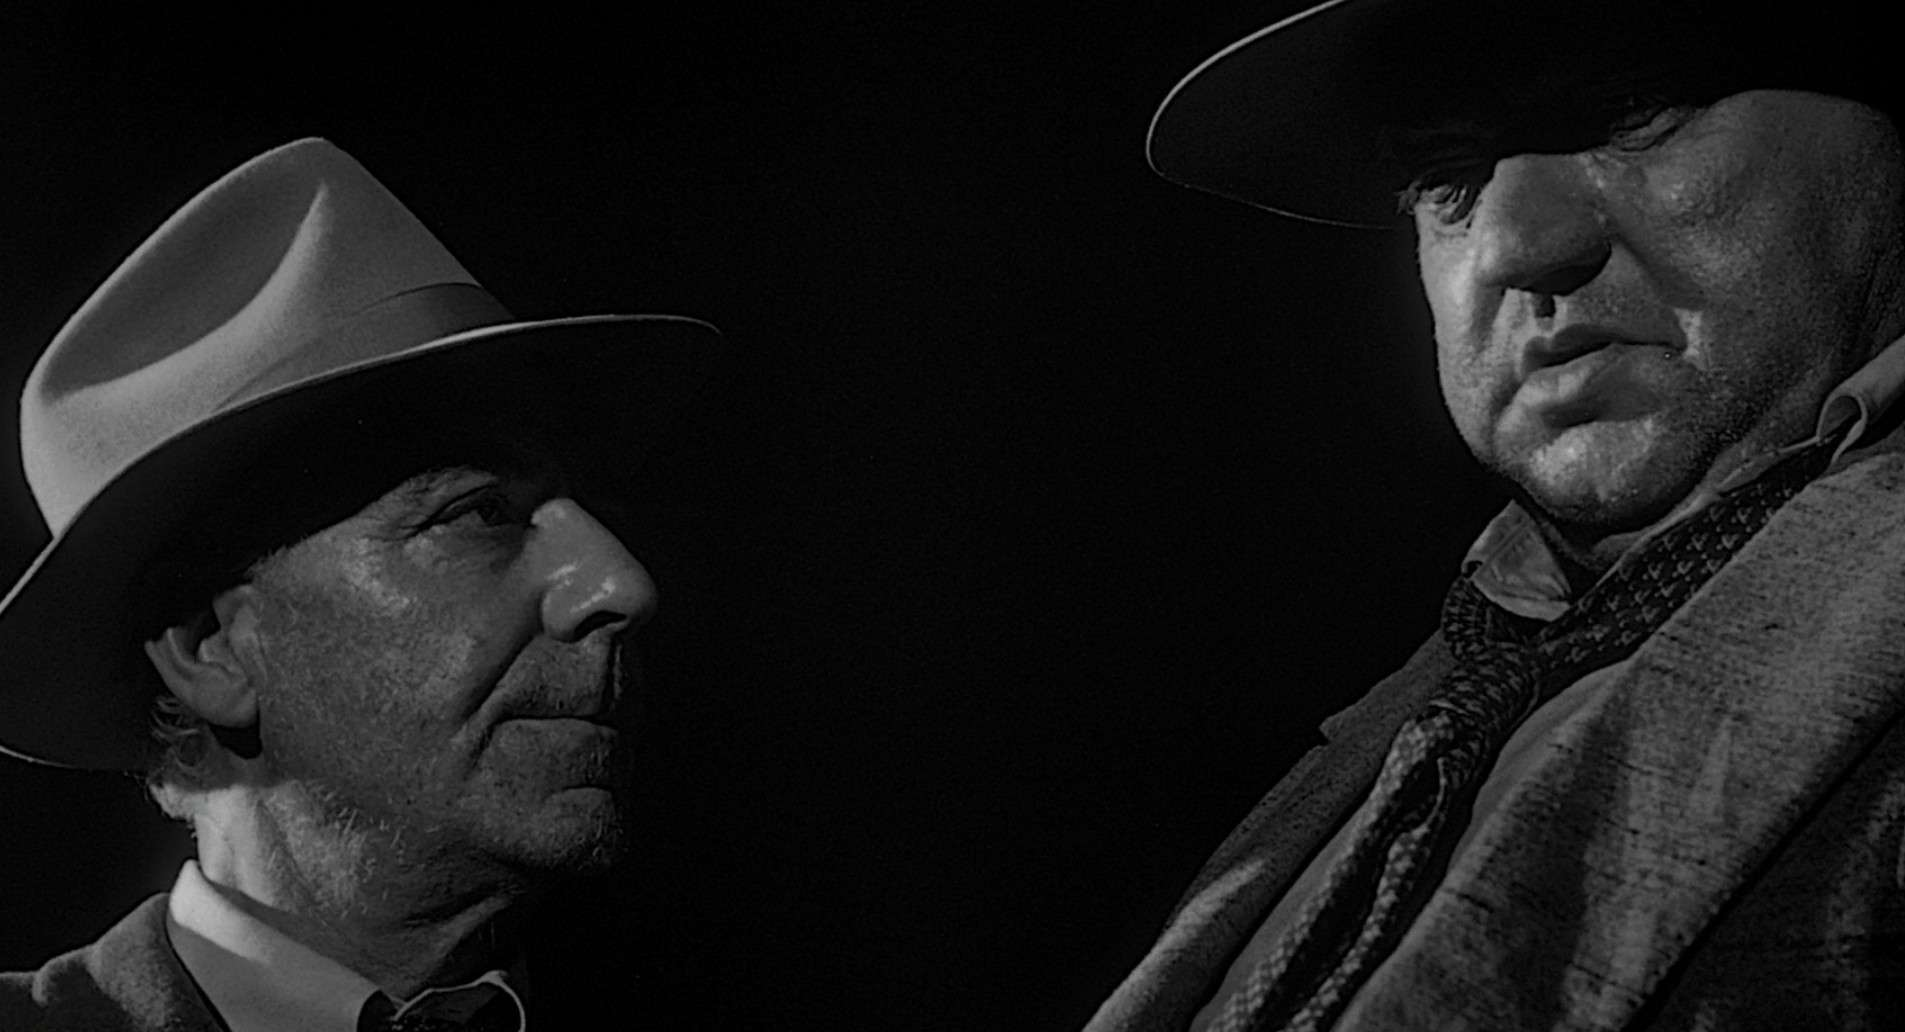 Sgt. Pete Menzies and Capt. Hank Quinlan in Orson Welles' �Touch of Evil� (1958)